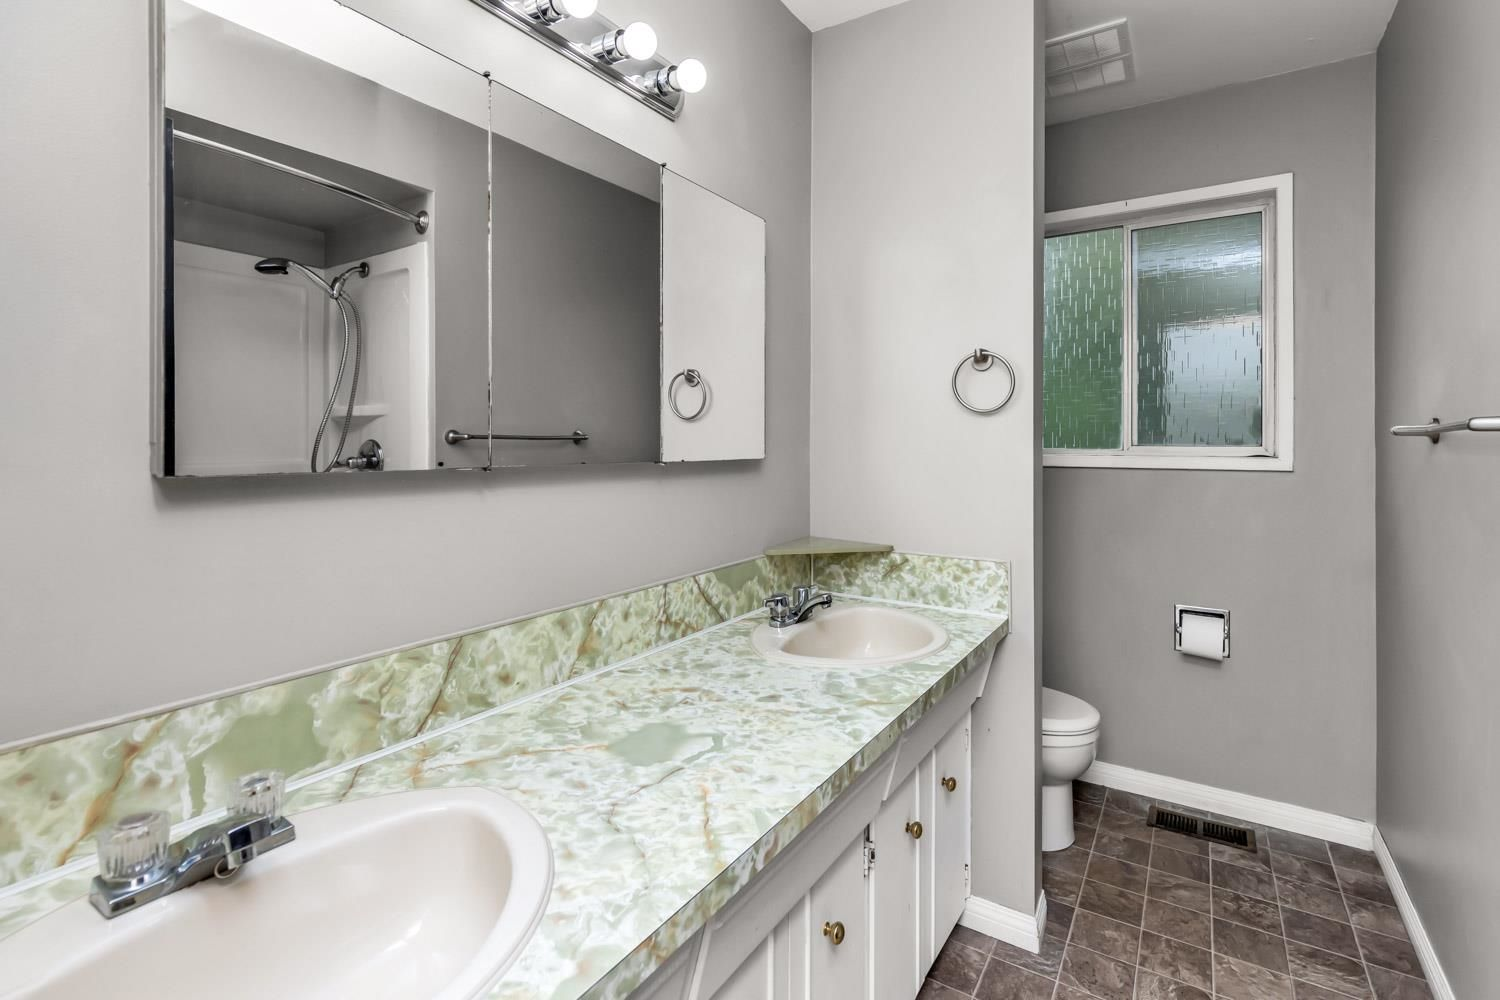 Photo 17: Photos: 2614 VALEMONT Crescent in Abbotsford: Abbotsford West House for sale : MLS®# R2611366